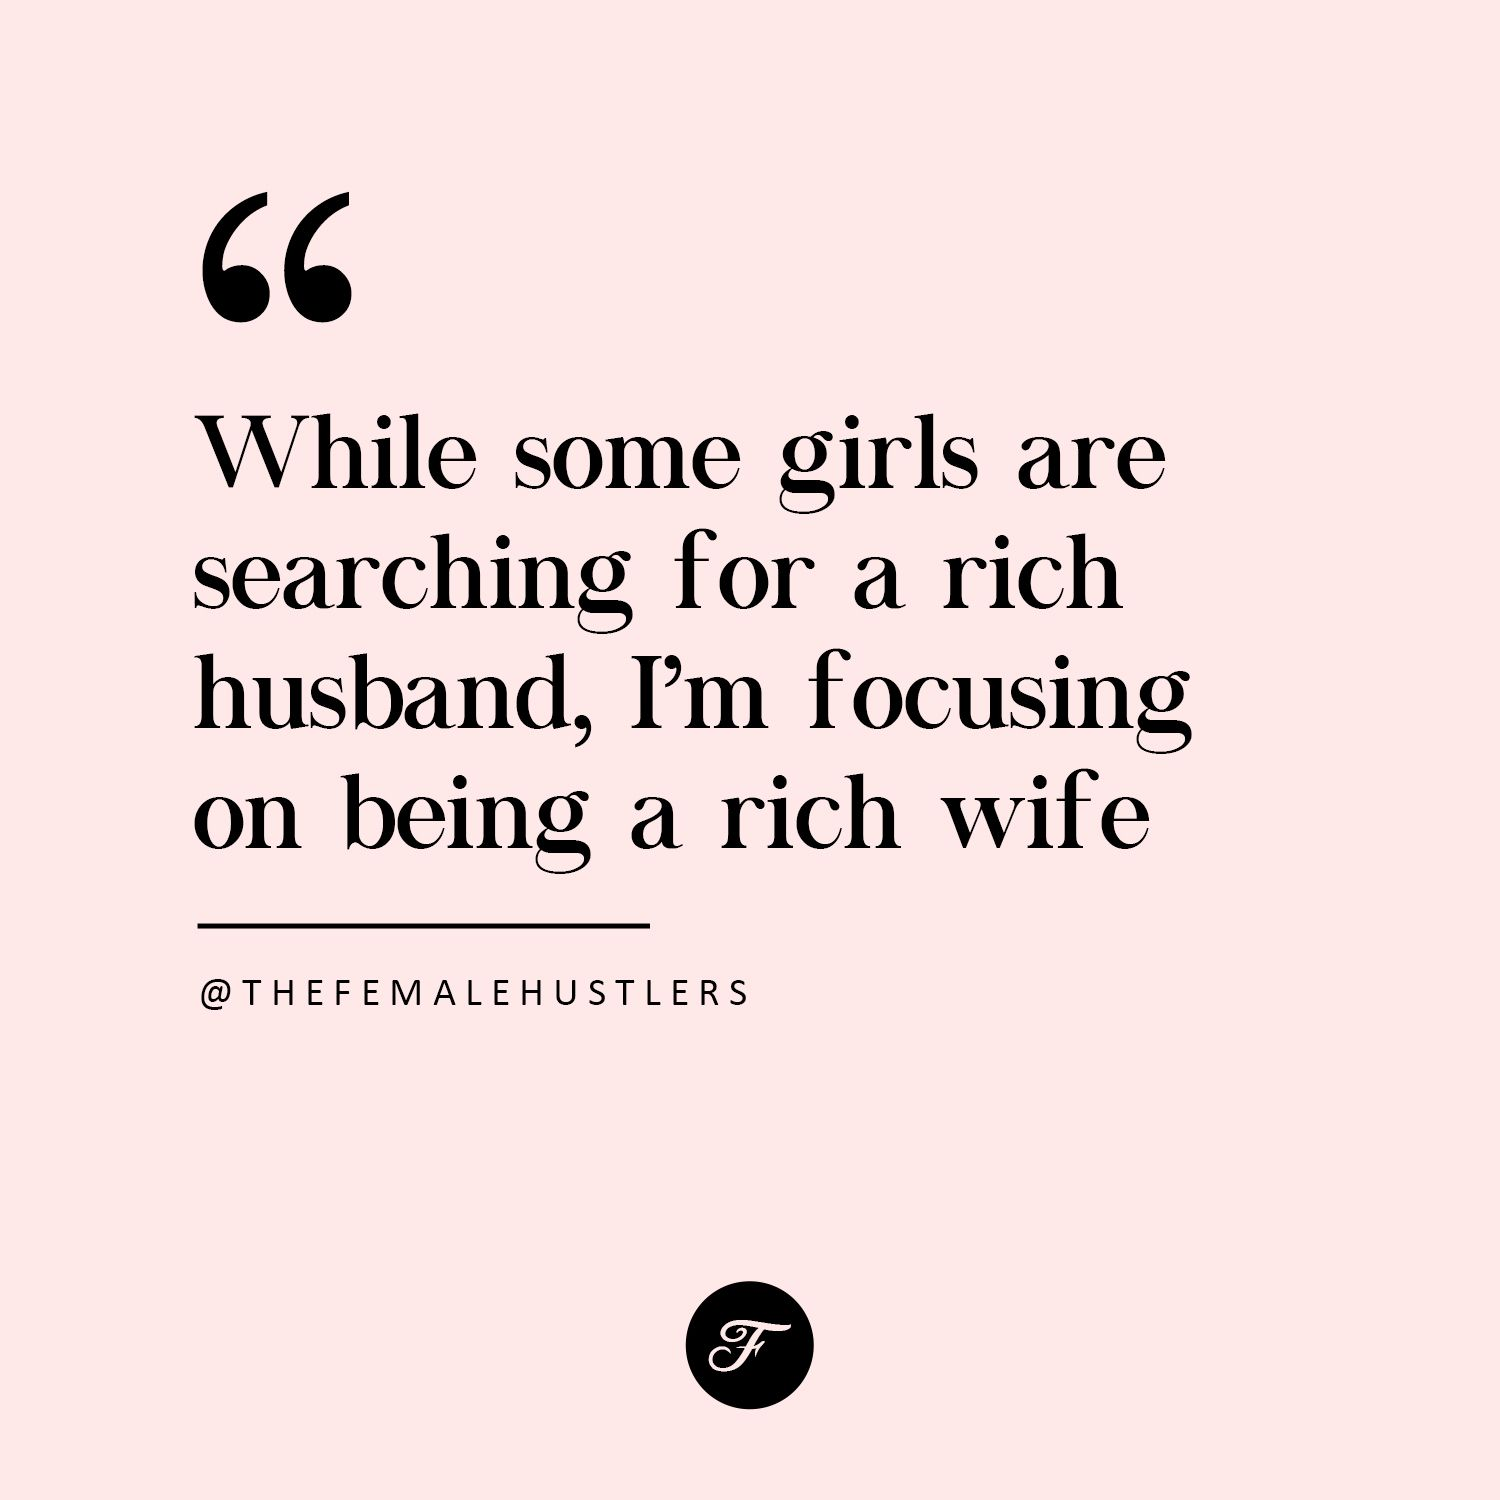 Follow Us On Instagram @thefemalehustlers For More Quotes